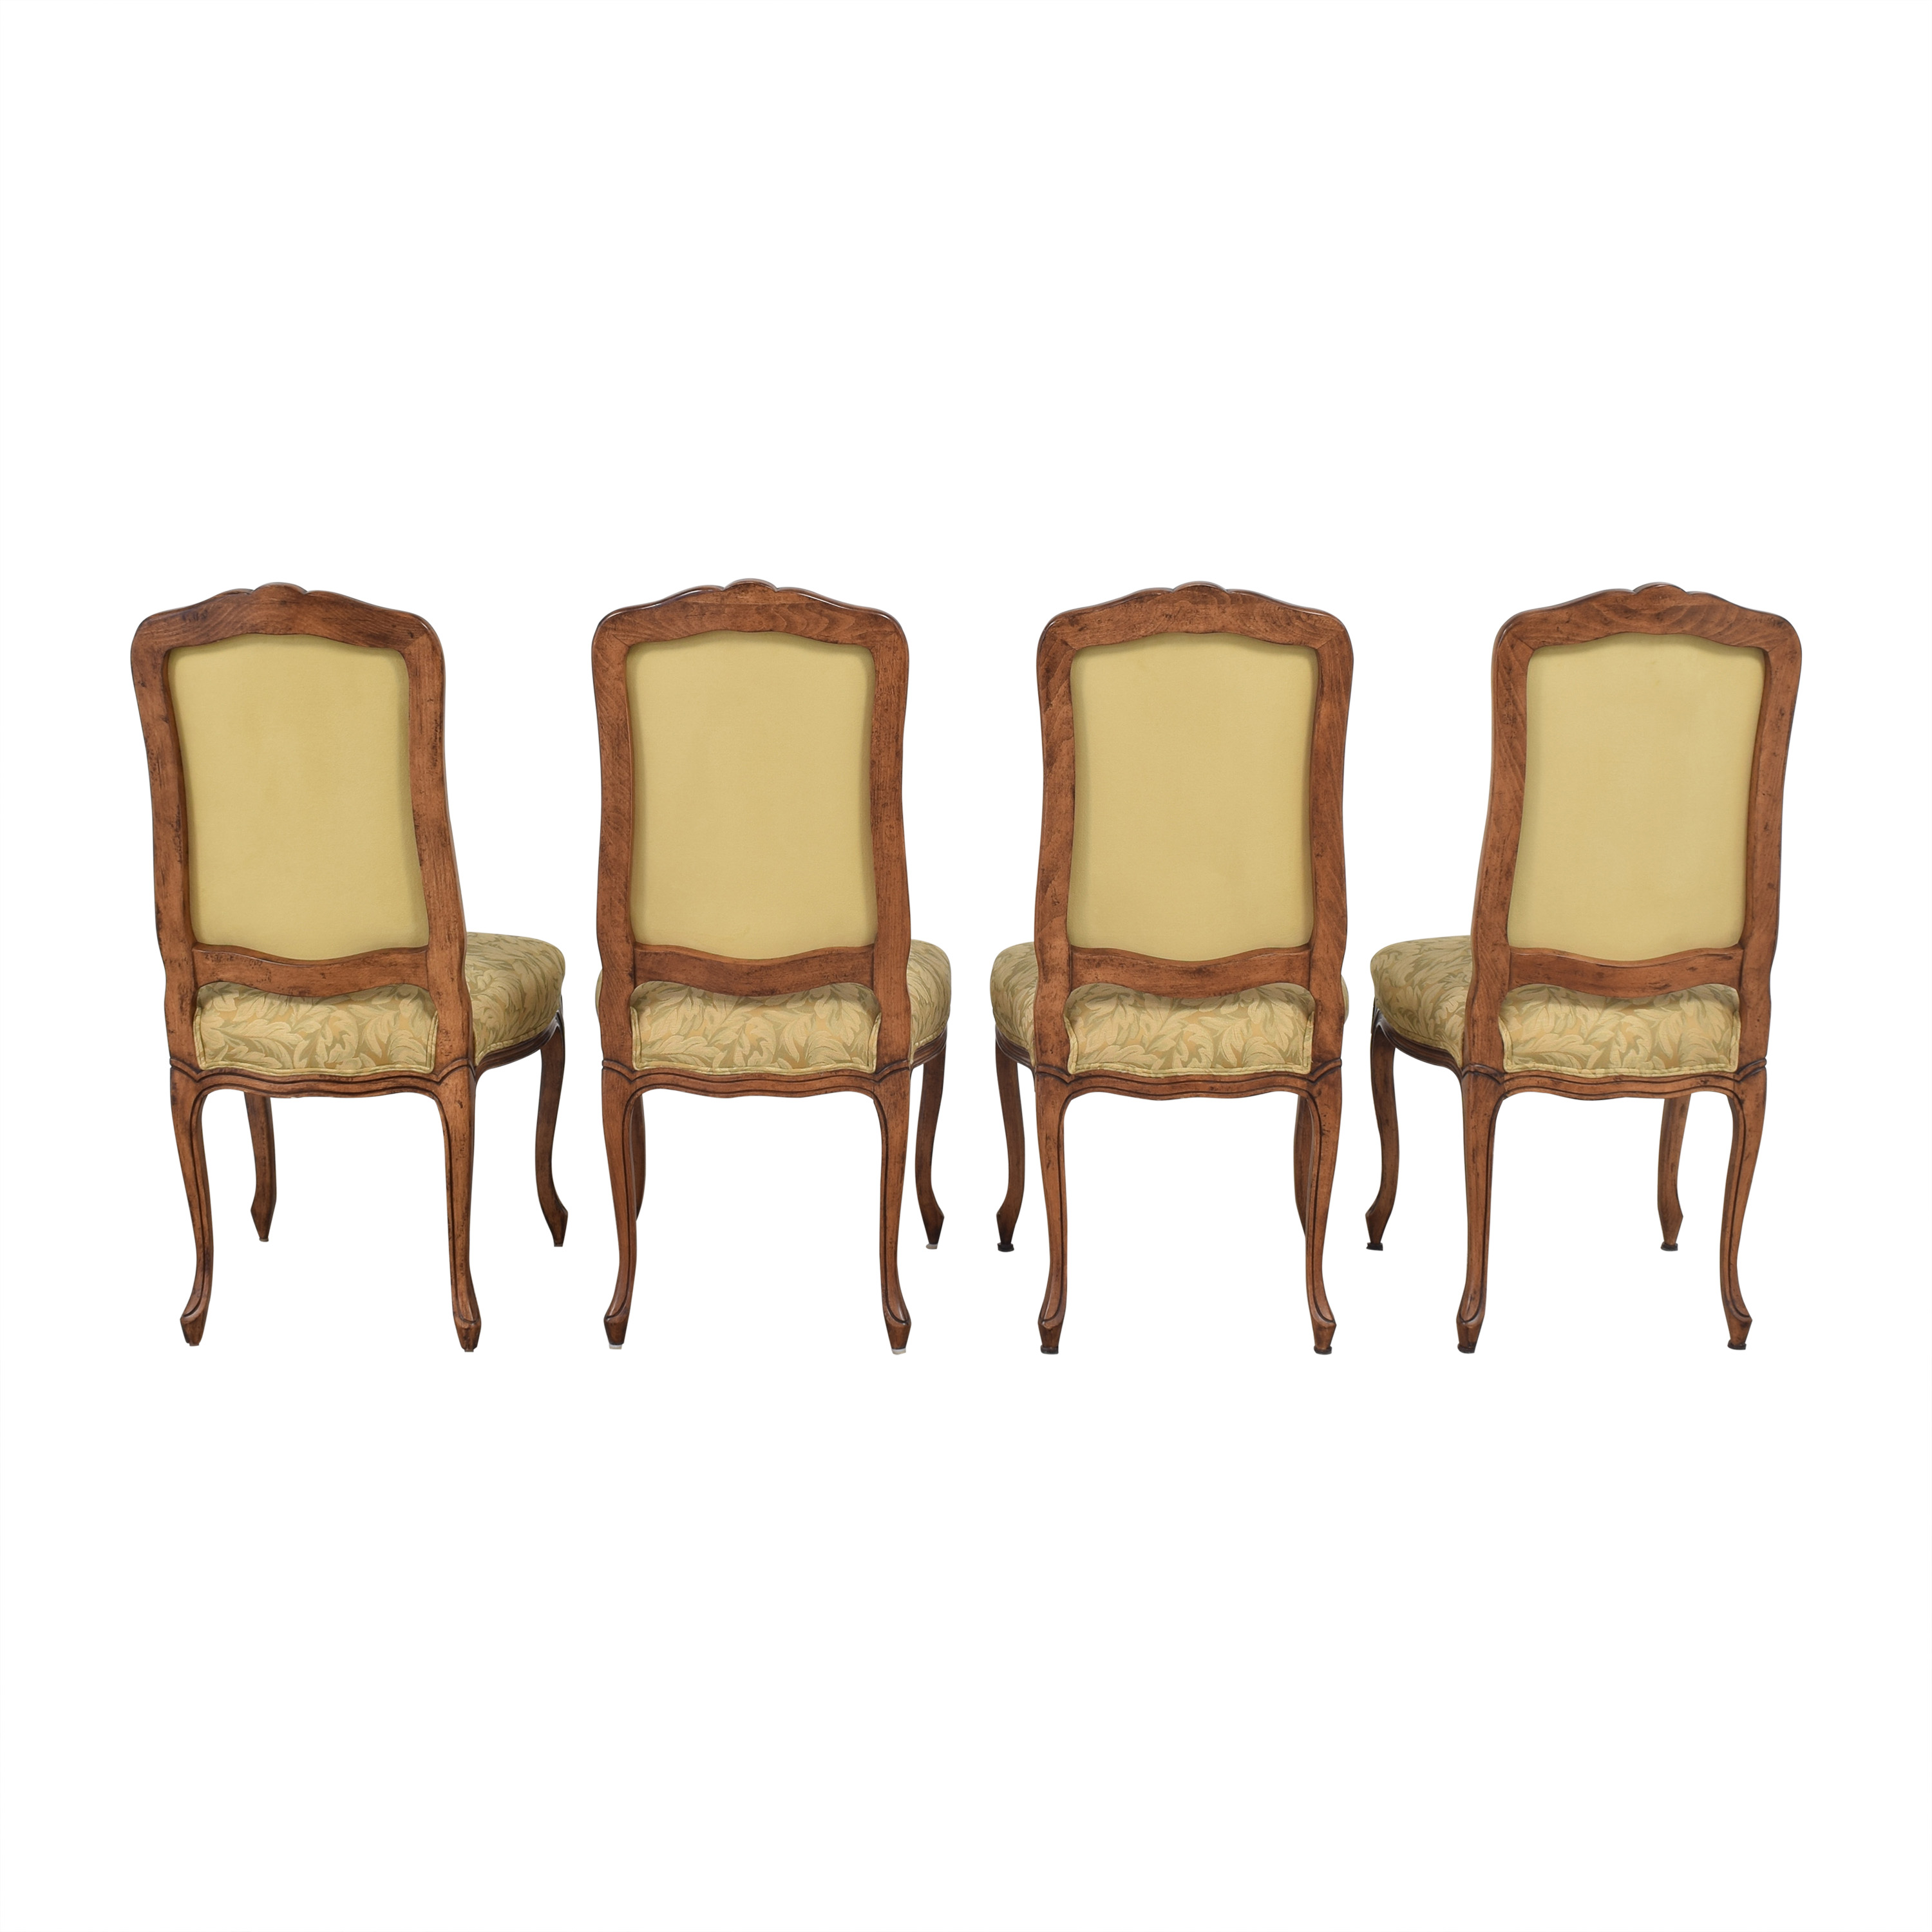 Fremarc Designs Fremarc Designs Carved Upholstered Dining Chairs coupon